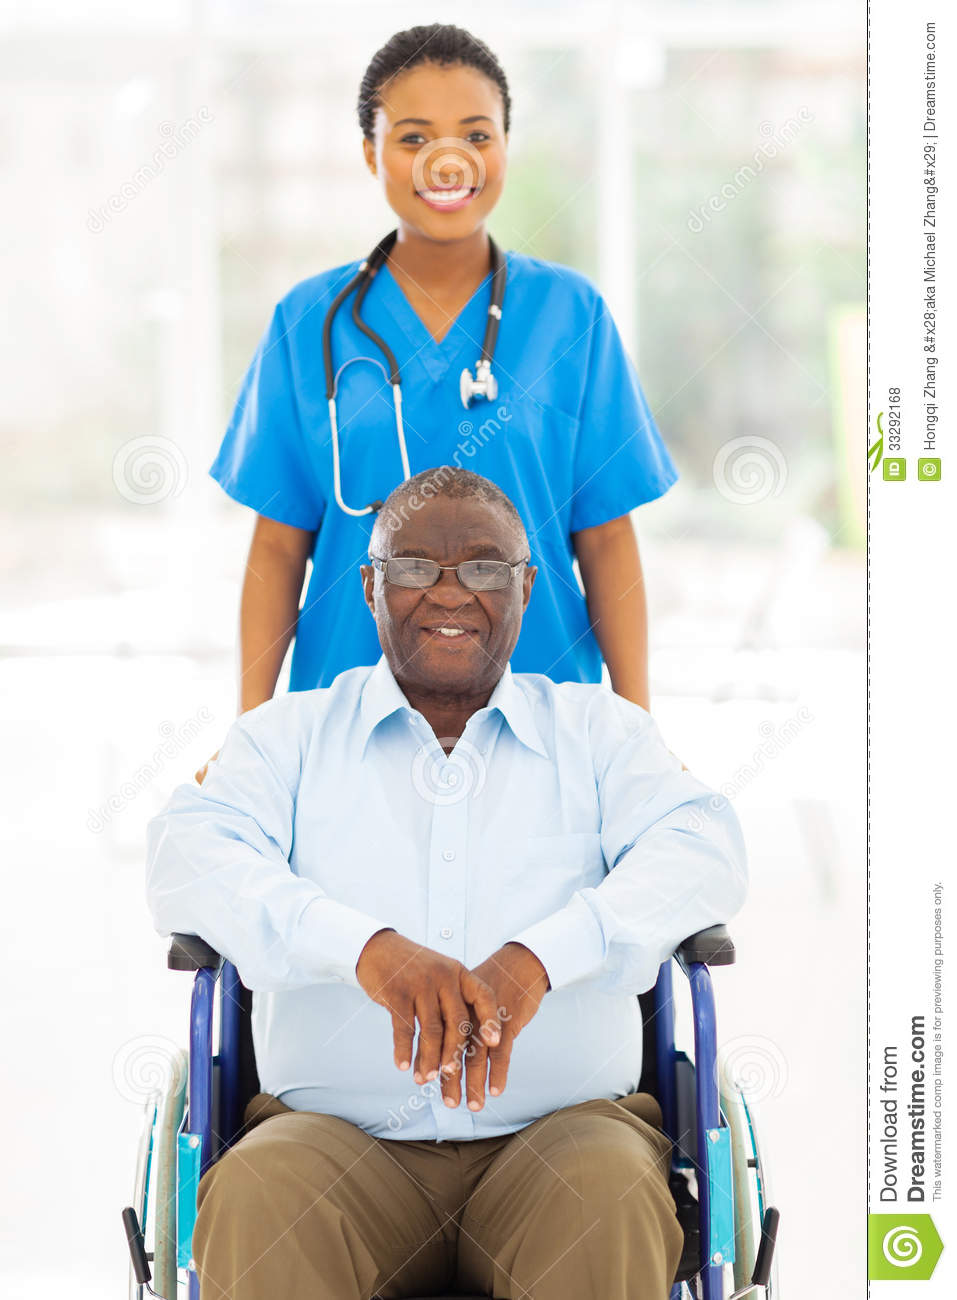 community health nursing plan african americans Roadblocks to hiv screening, treatment, and care in black communities   outcomes and fueled health disparities, such as disproportionate rates of   mother-to-child transmission of hiv during pregnancy and nursing45 this  approach.